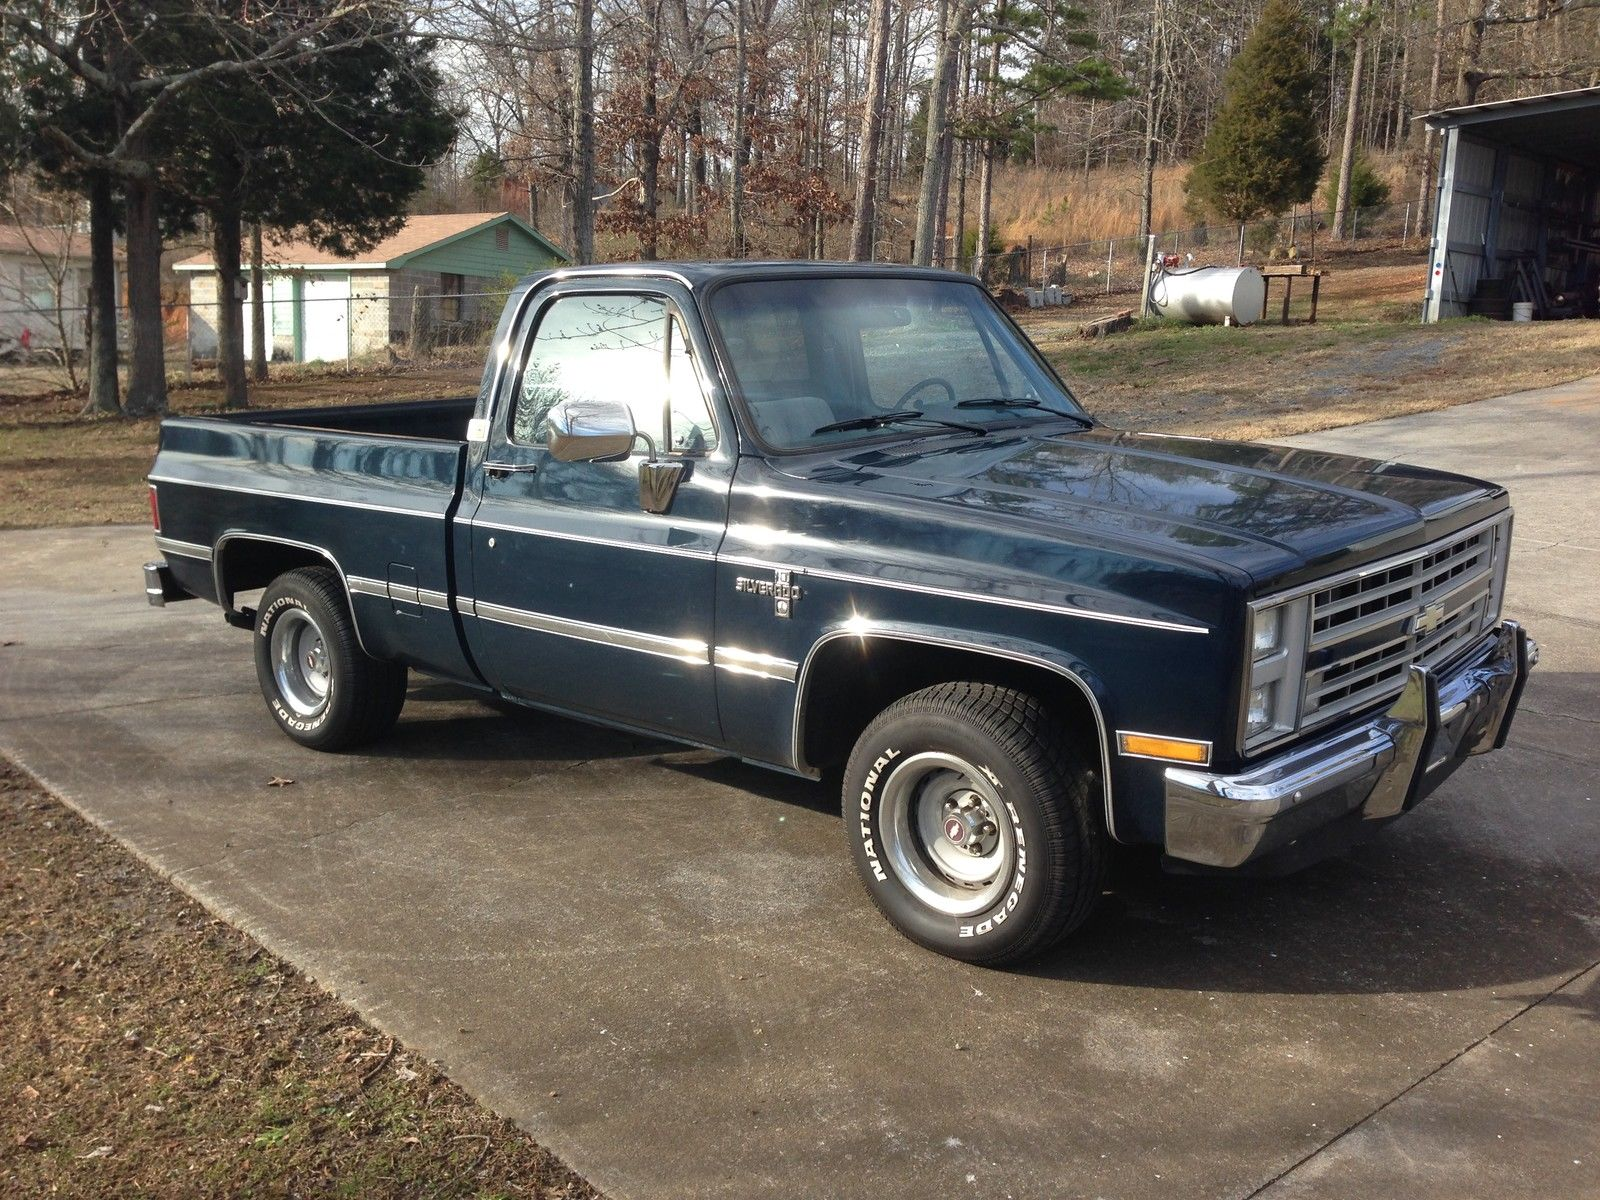 1987 Chevrolet Silverado 2wd Regular Cab Short Bed For Sale In Cartersville Georgia United States For Sale Photos Technical Specifications Description